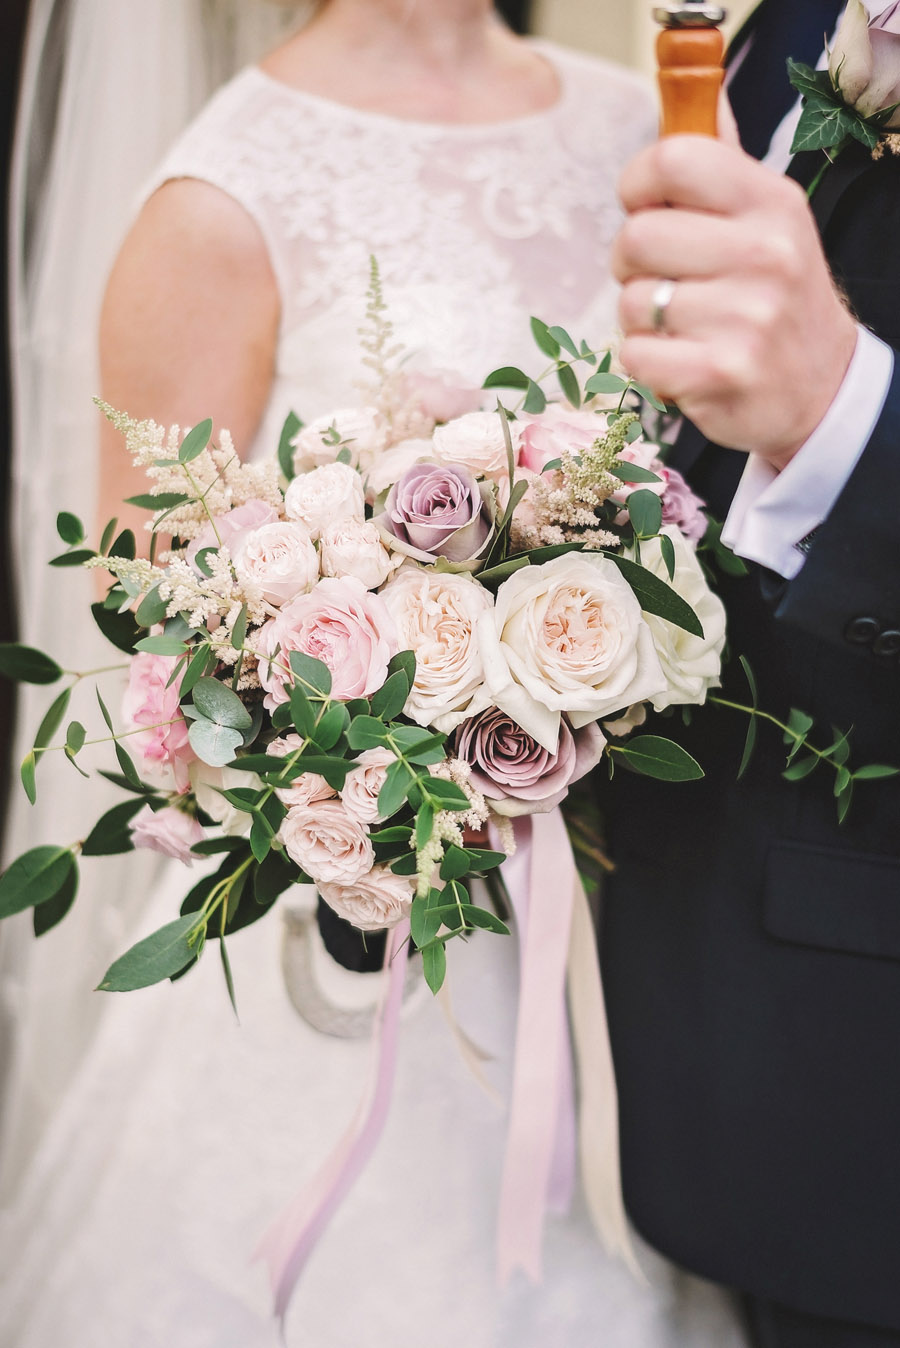 Eversholt Hall wedding with feminine floral styling, image credit Matthew Bishop Photography (27)